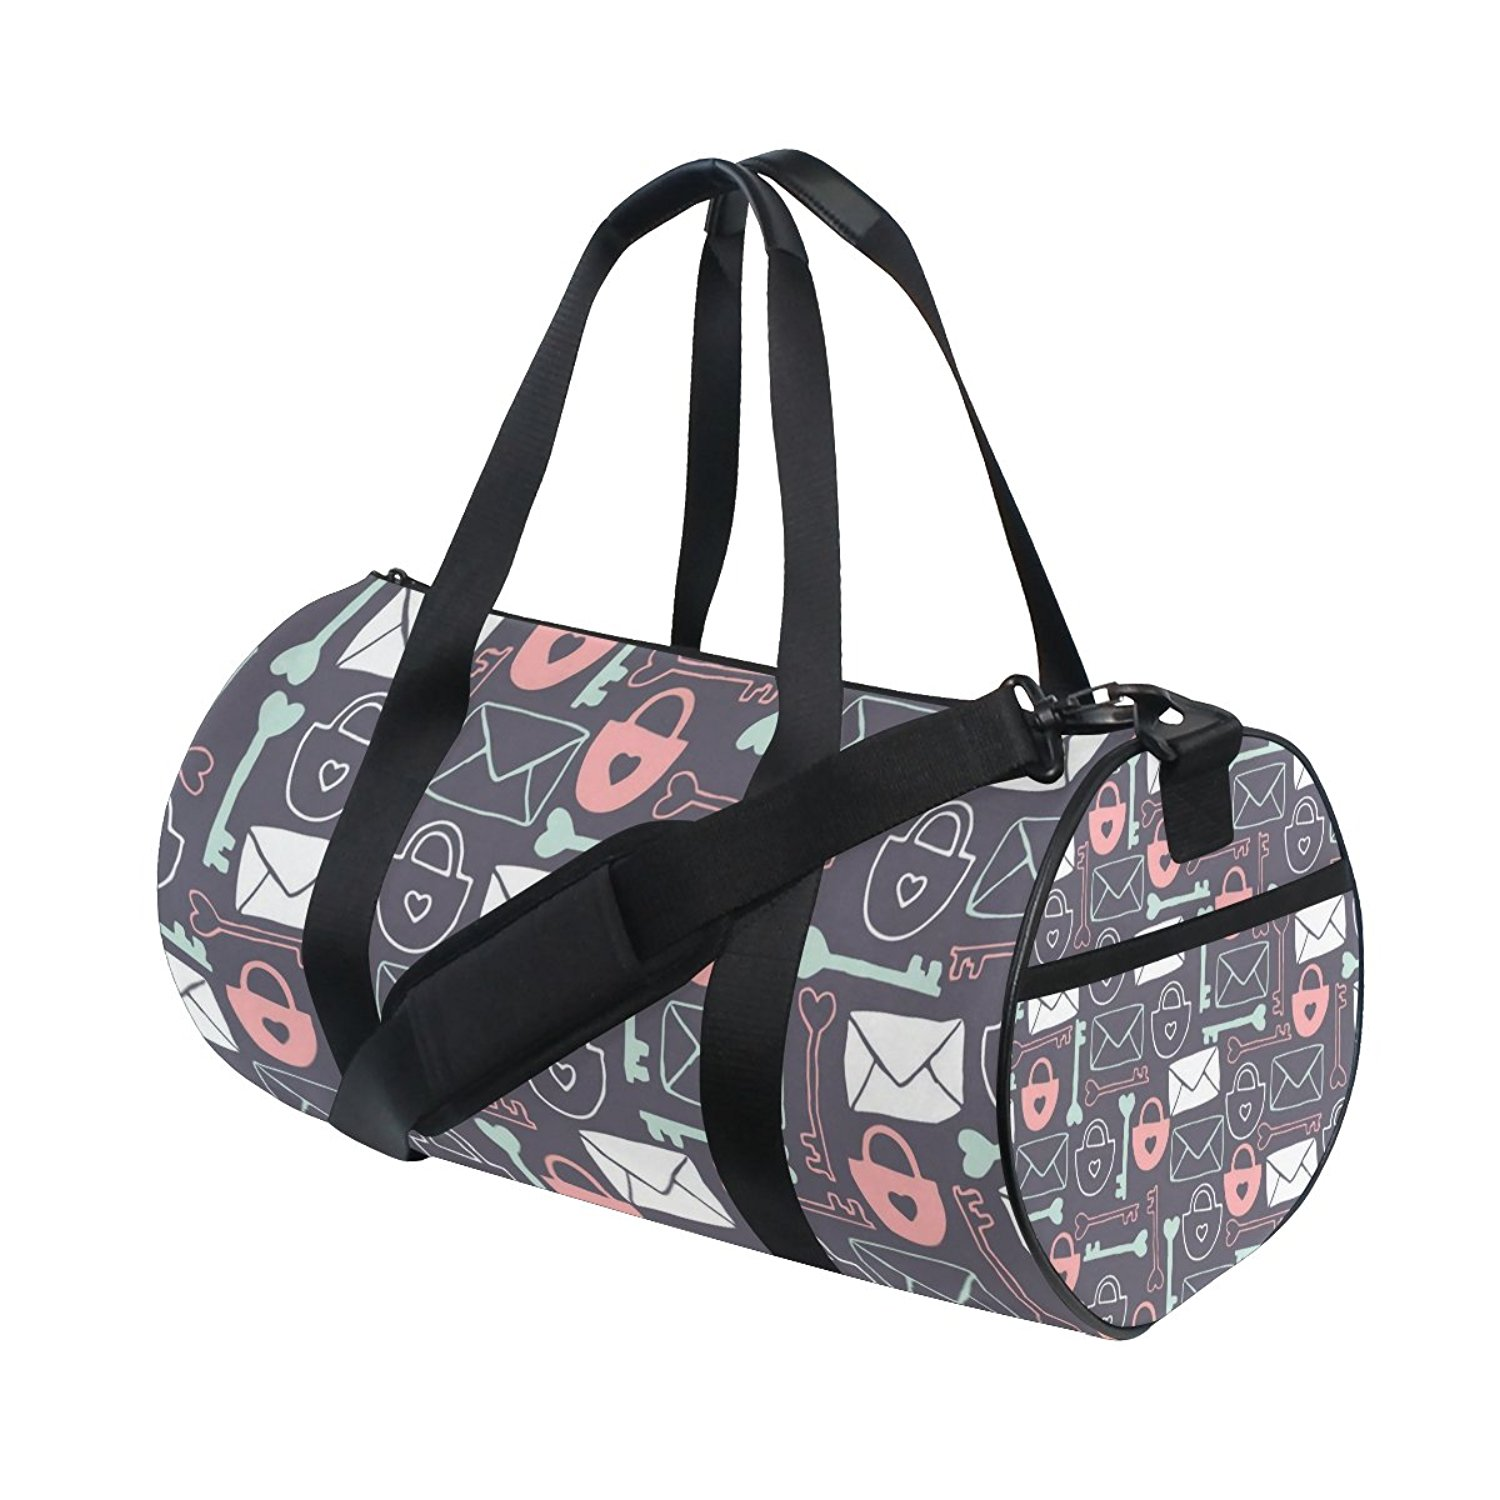 Gym Bag Key Lock Pattern Sports Travel Duffel Lightweight Canvas Bag